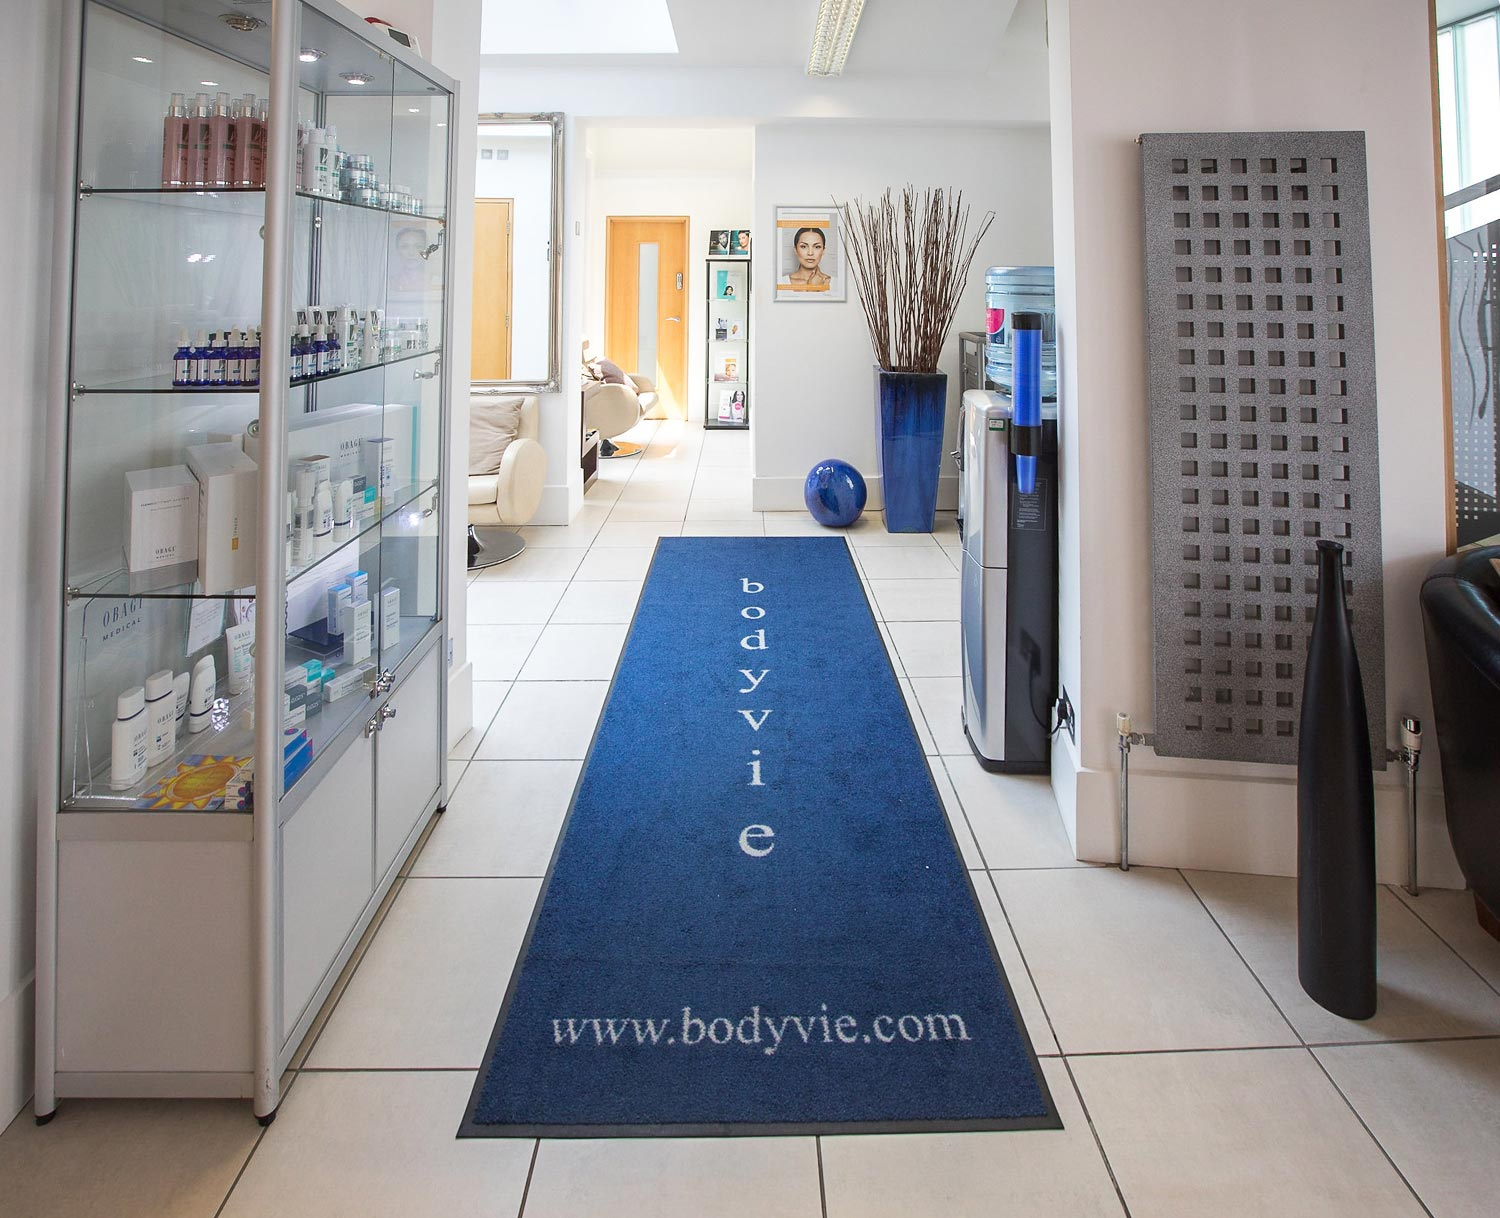 Beauty Treatment Review: Bios Square Epil Laser At 5-Star Clinic Bodyvie 12